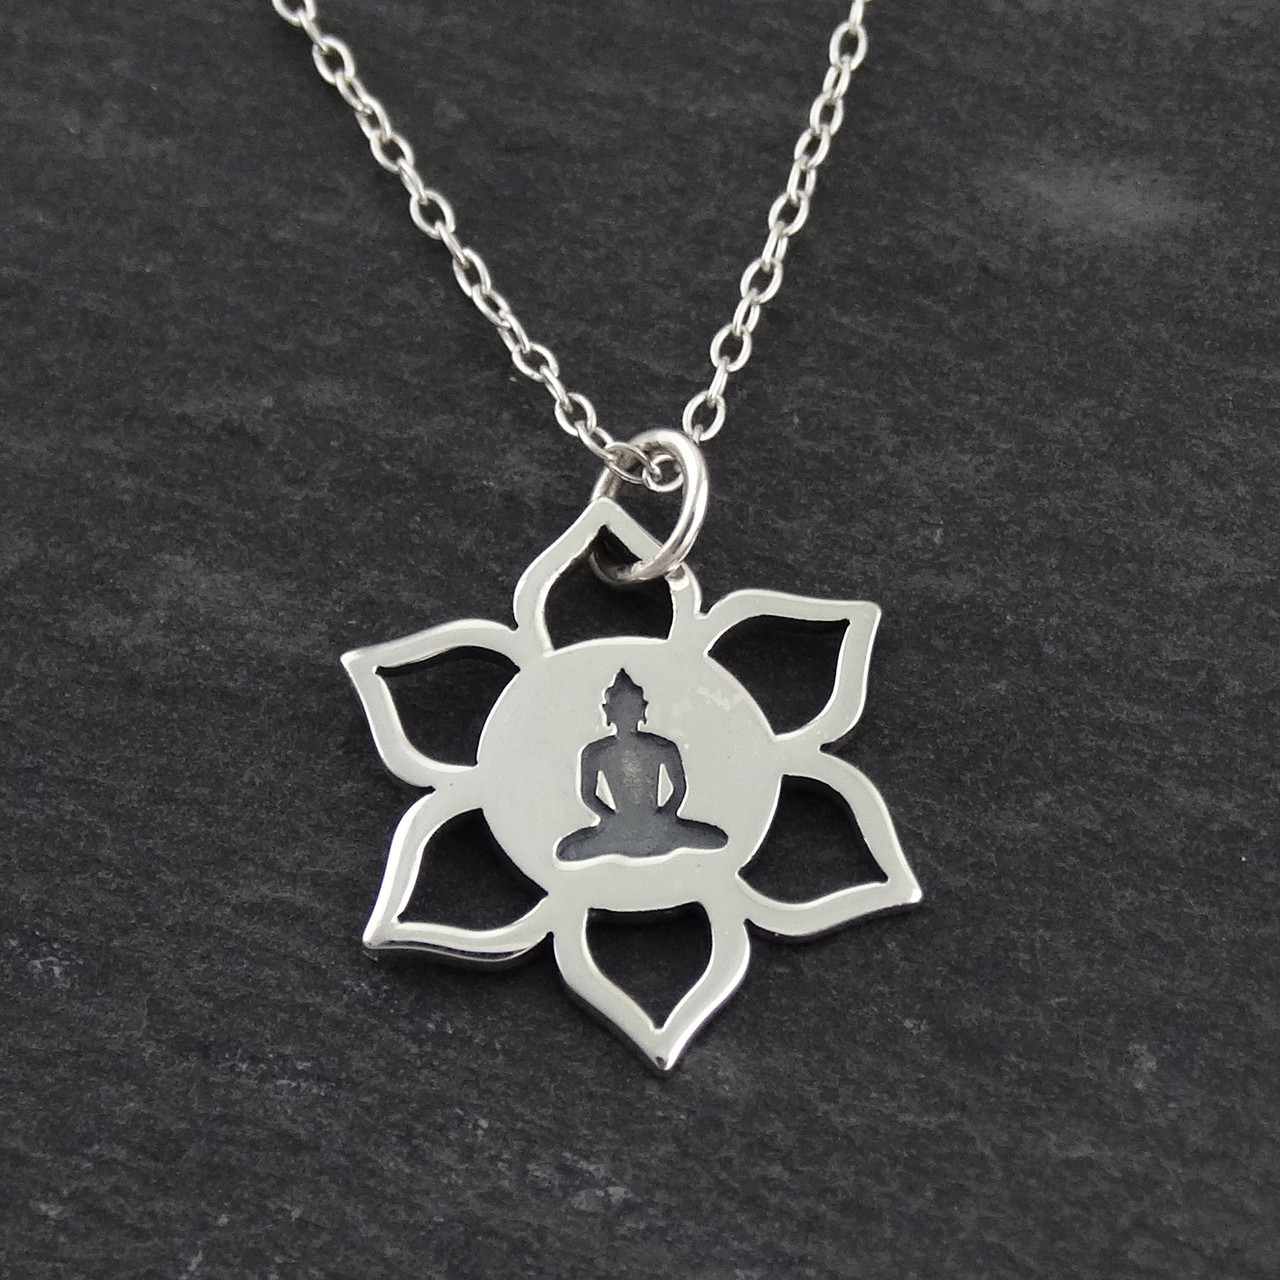 Buddha lotus flower necklace in 925 sterling silver fashionjunkie4life lotus flower buddha necklace 925 sterling silver izmirmasajfo